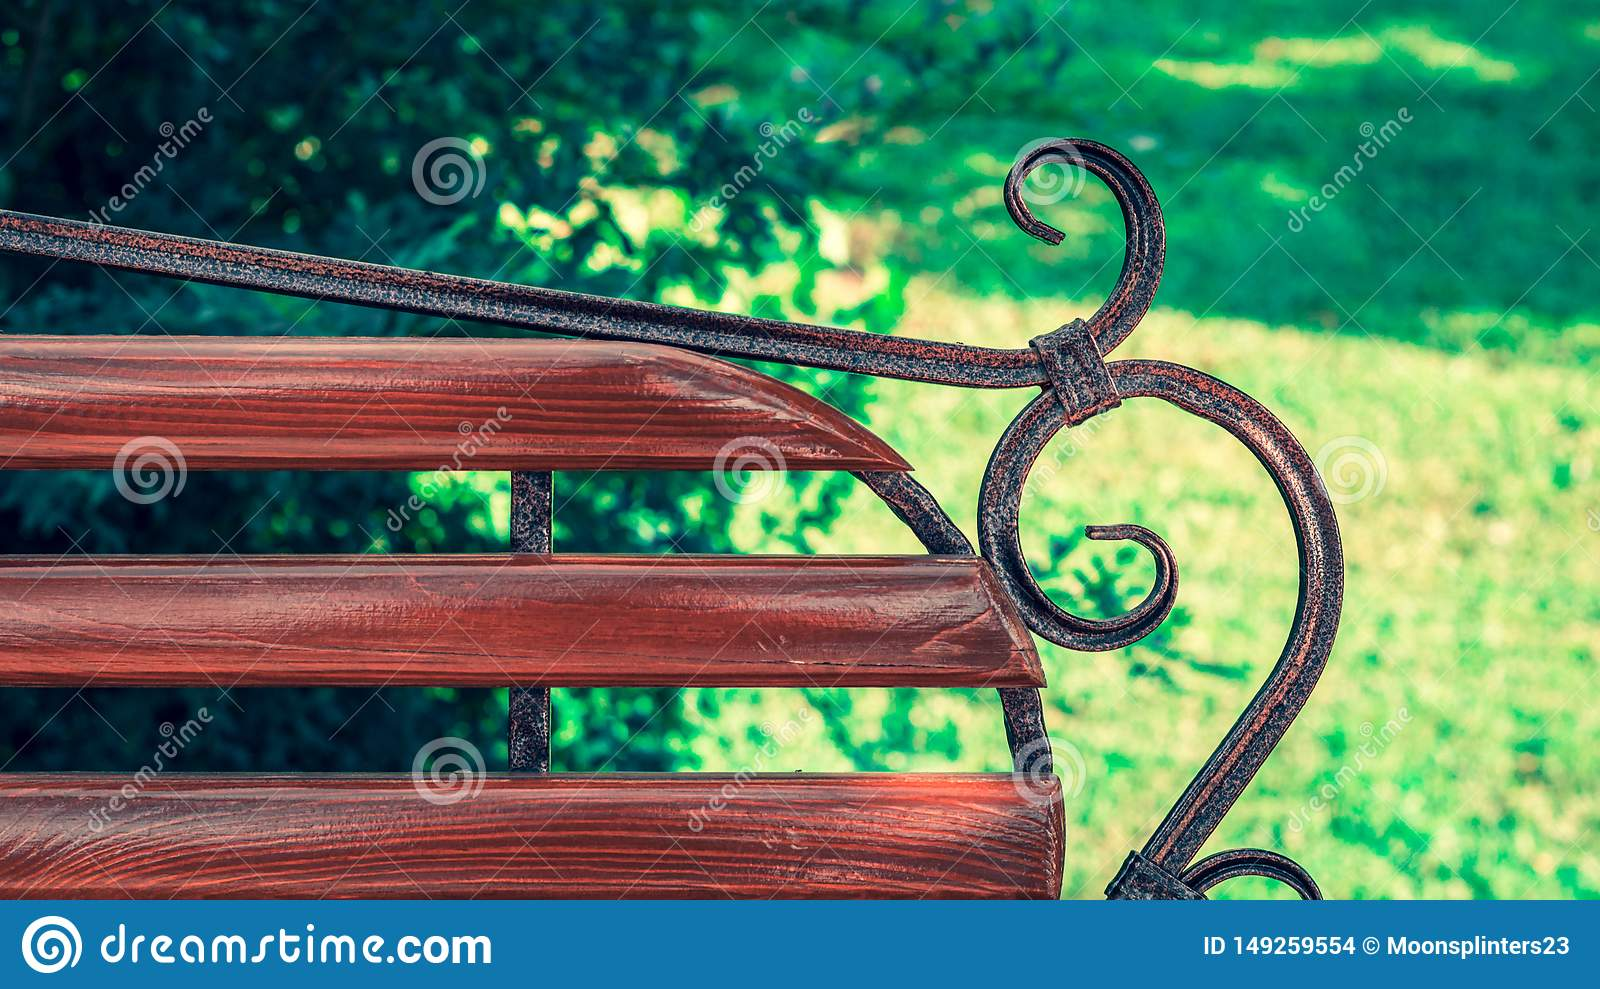 Enjoyable Wooden Bench With Metal Art Forging In The Amusement Park Pabps2019 Chair Design Images Pabps2019Com